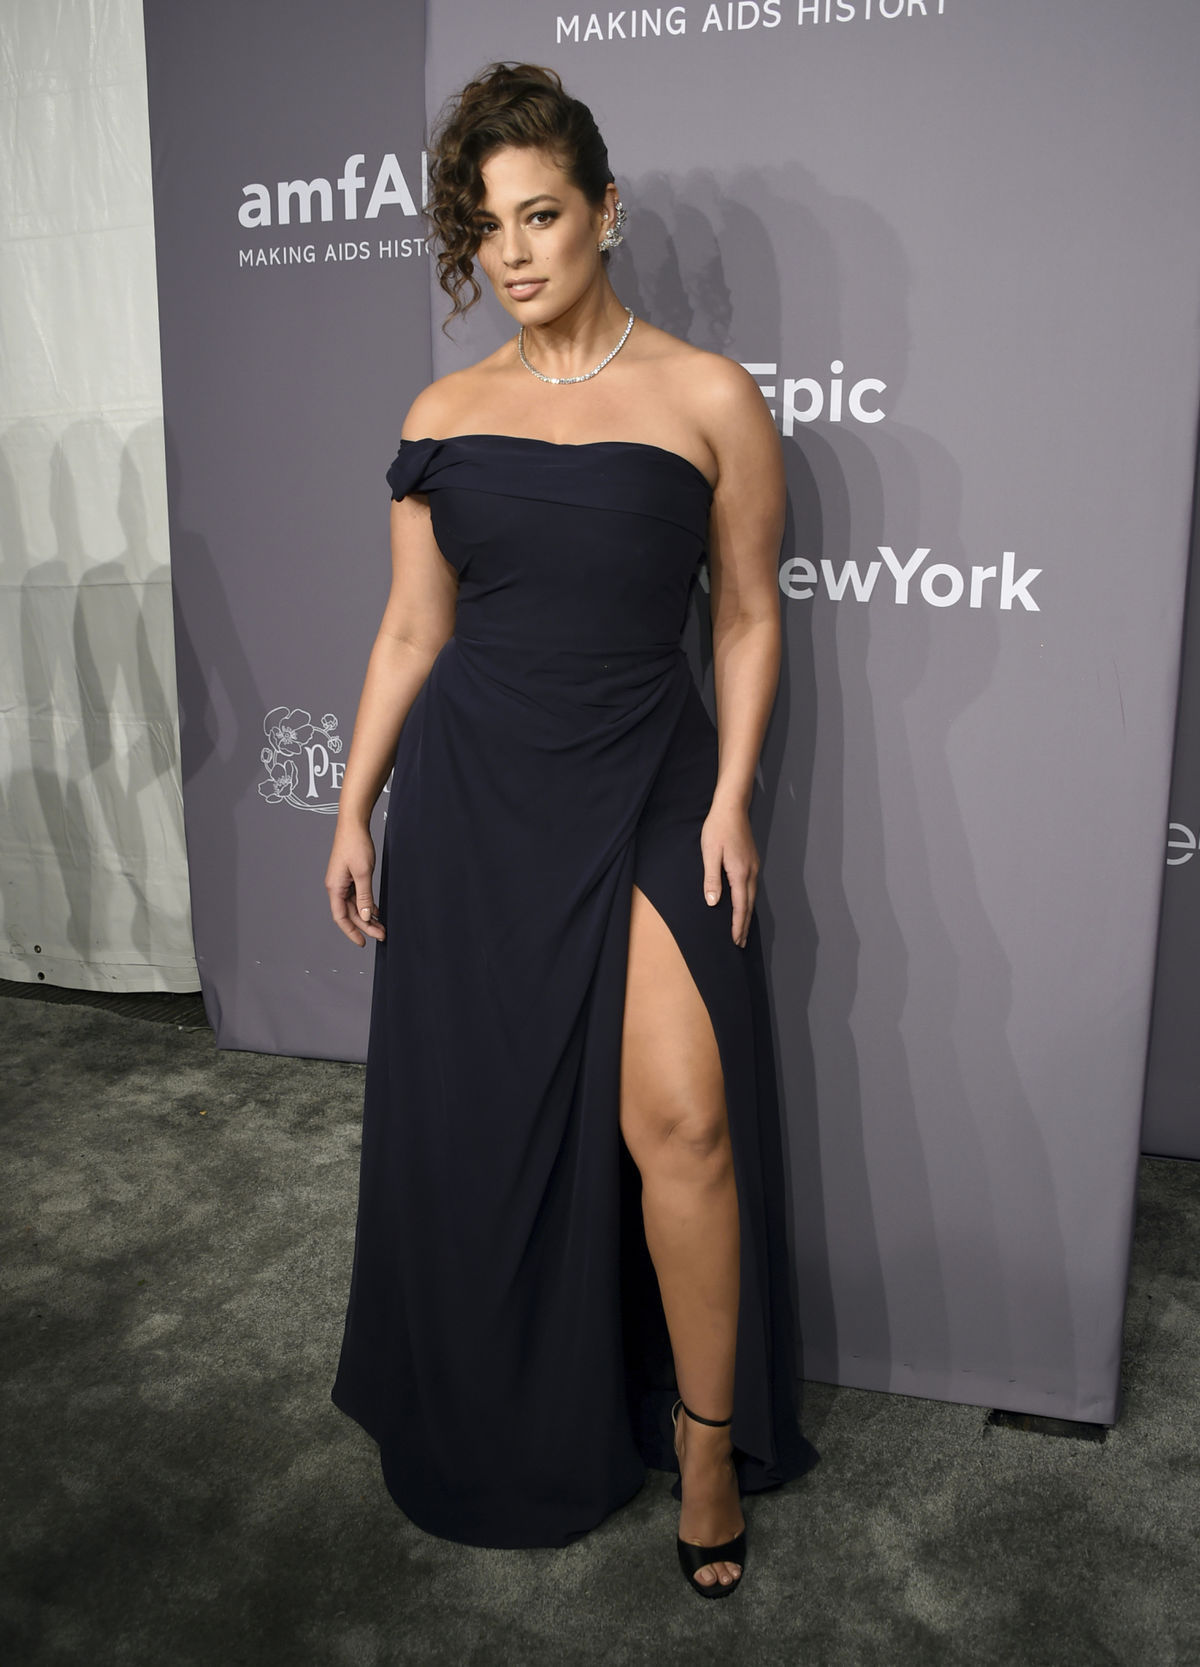 Topmodelka Ashley Graham na akcii amfAR Gala v...